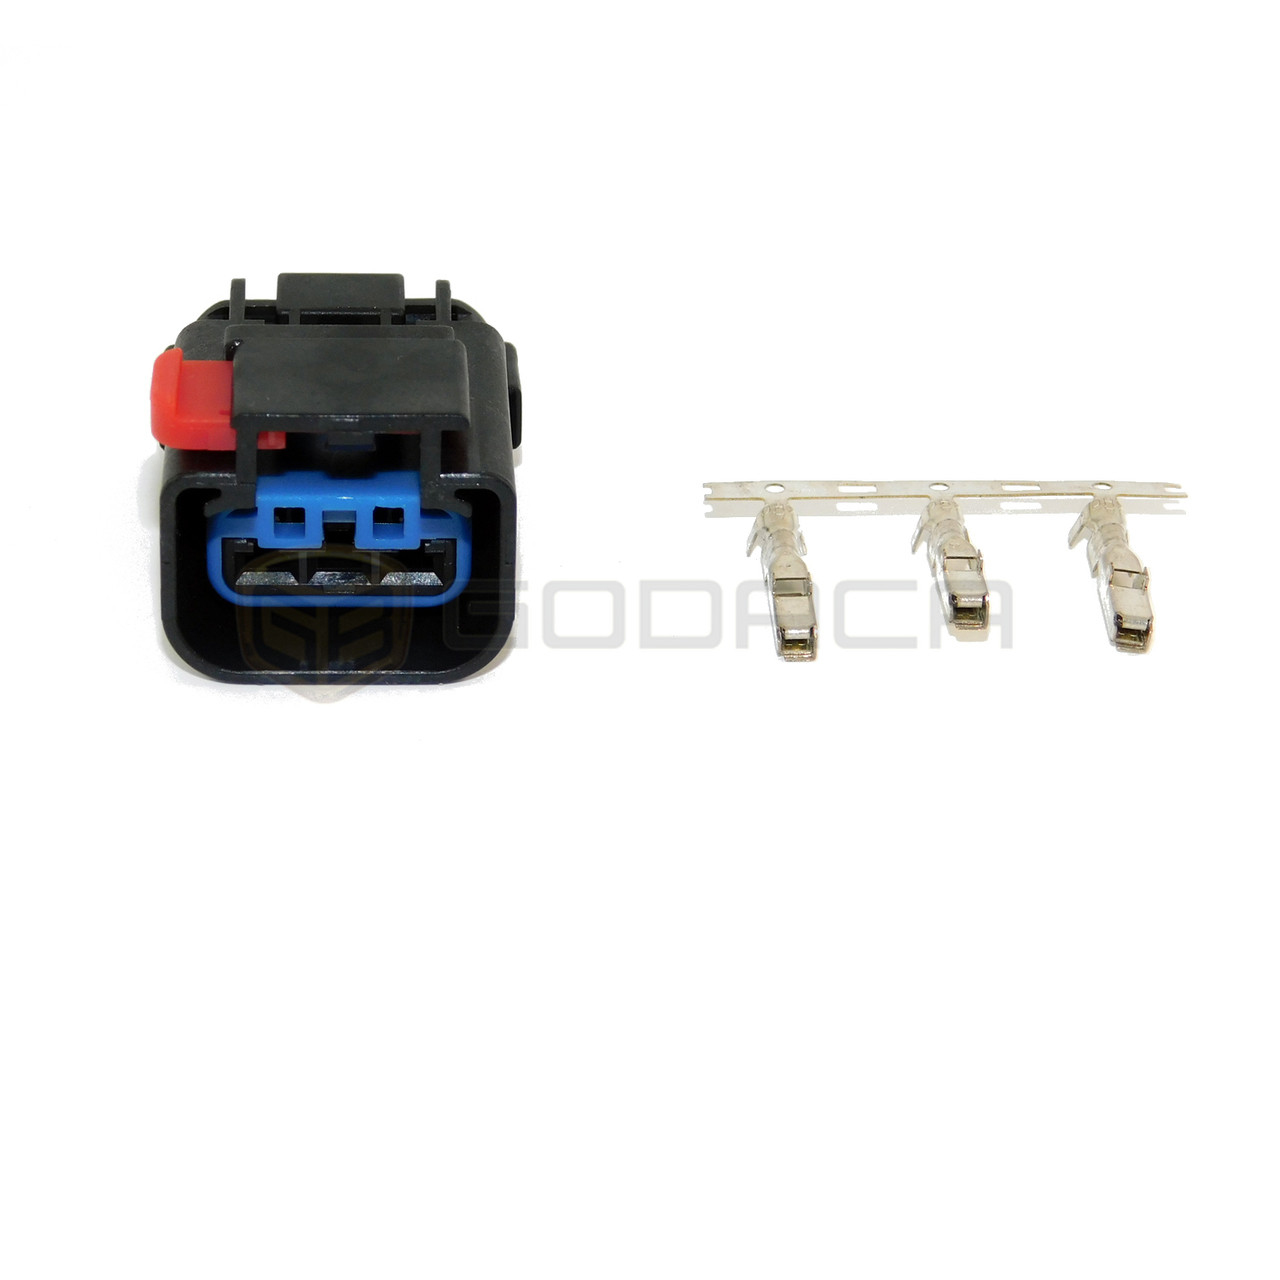 hight resolution of 1x connector 3 way for cps ignition coil pt5726 1p1080 dodge w out wire godaca llc